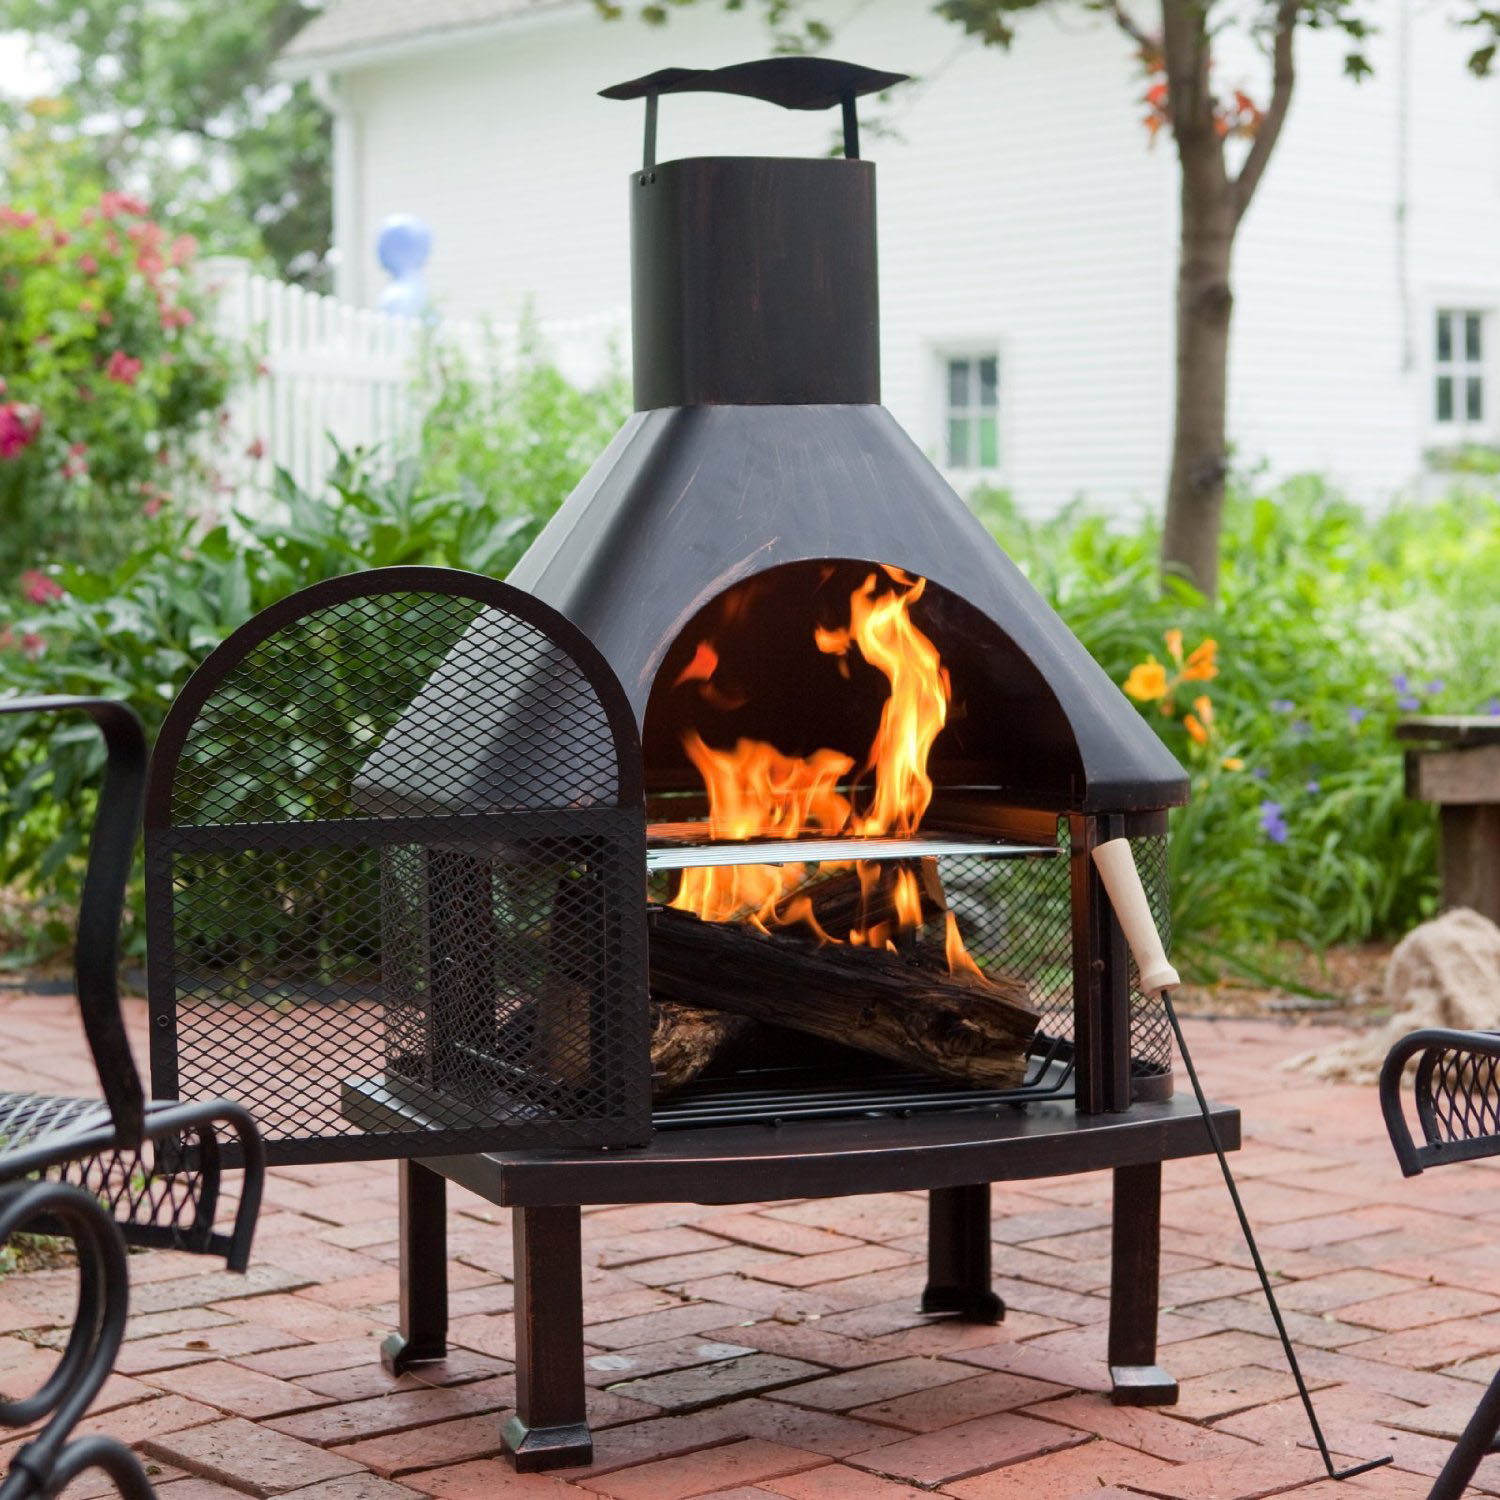 Gallery Of Metal Chiminea Fire Pit: